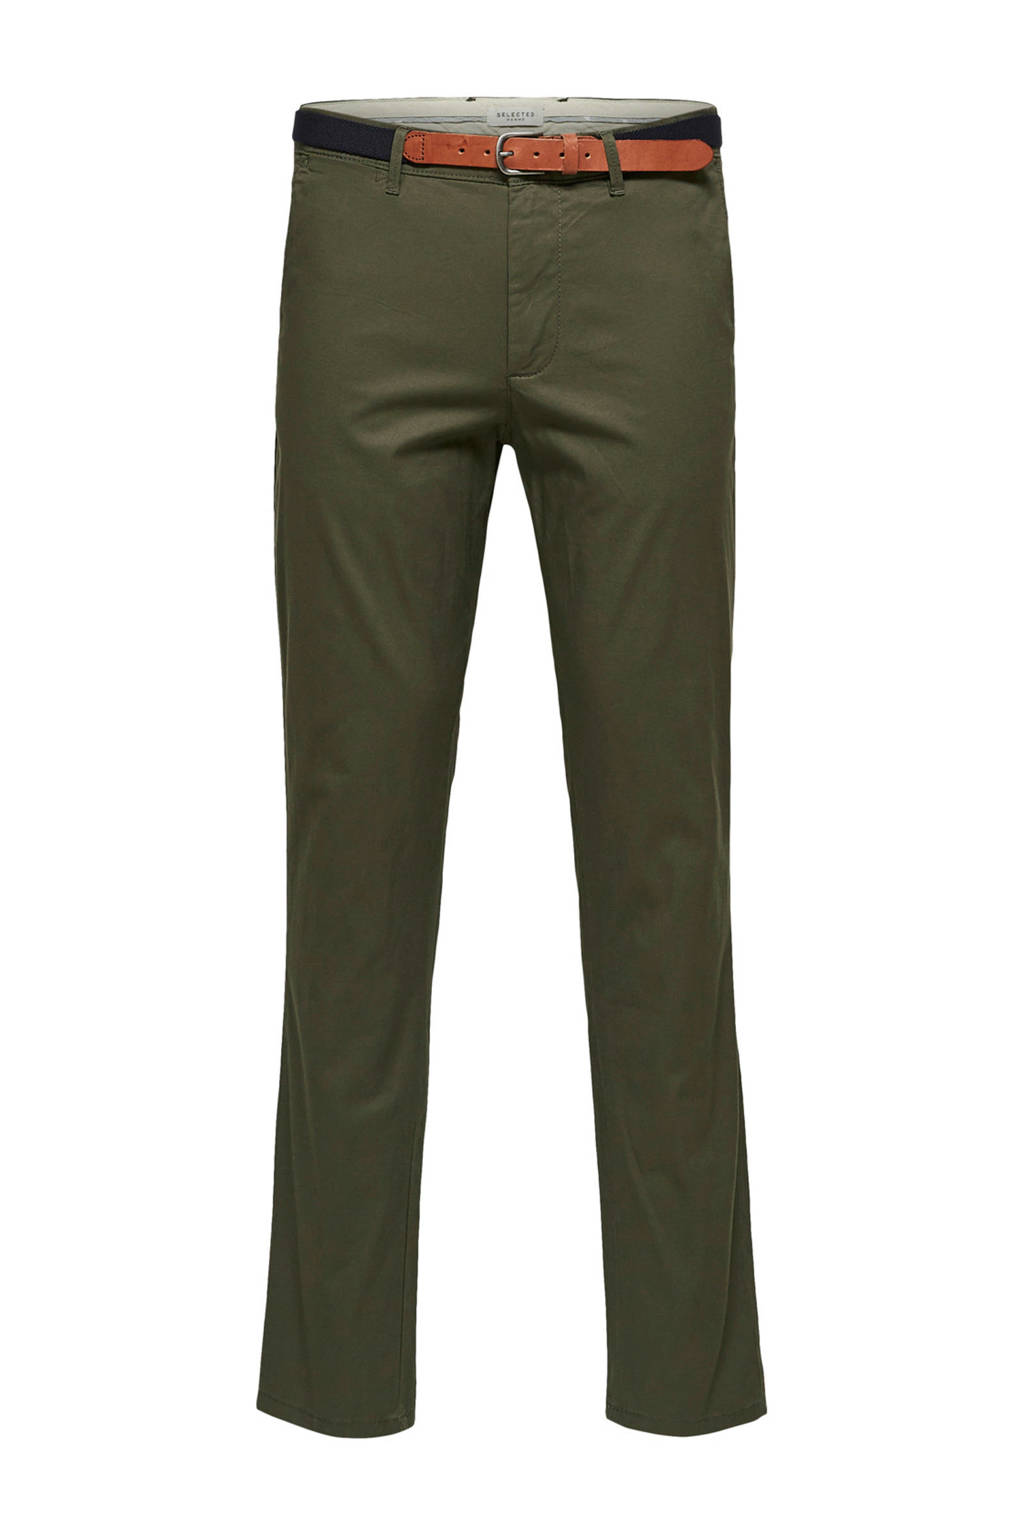 SELECTED HOMME slim fit chino, Donkergroen